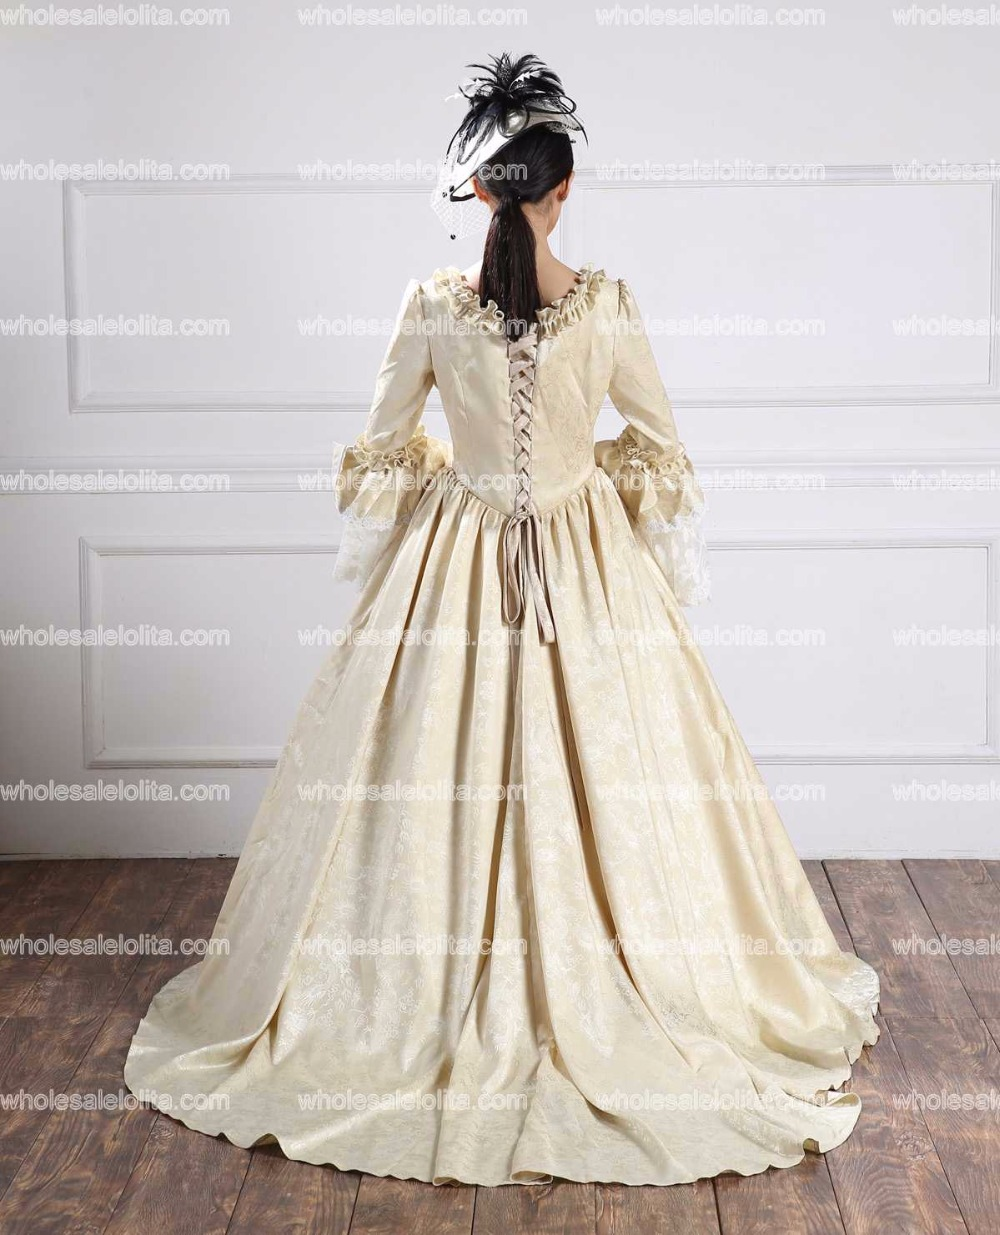 High Quality Holiday Champagne Baroque Marie Antoinette Dress 18th ...